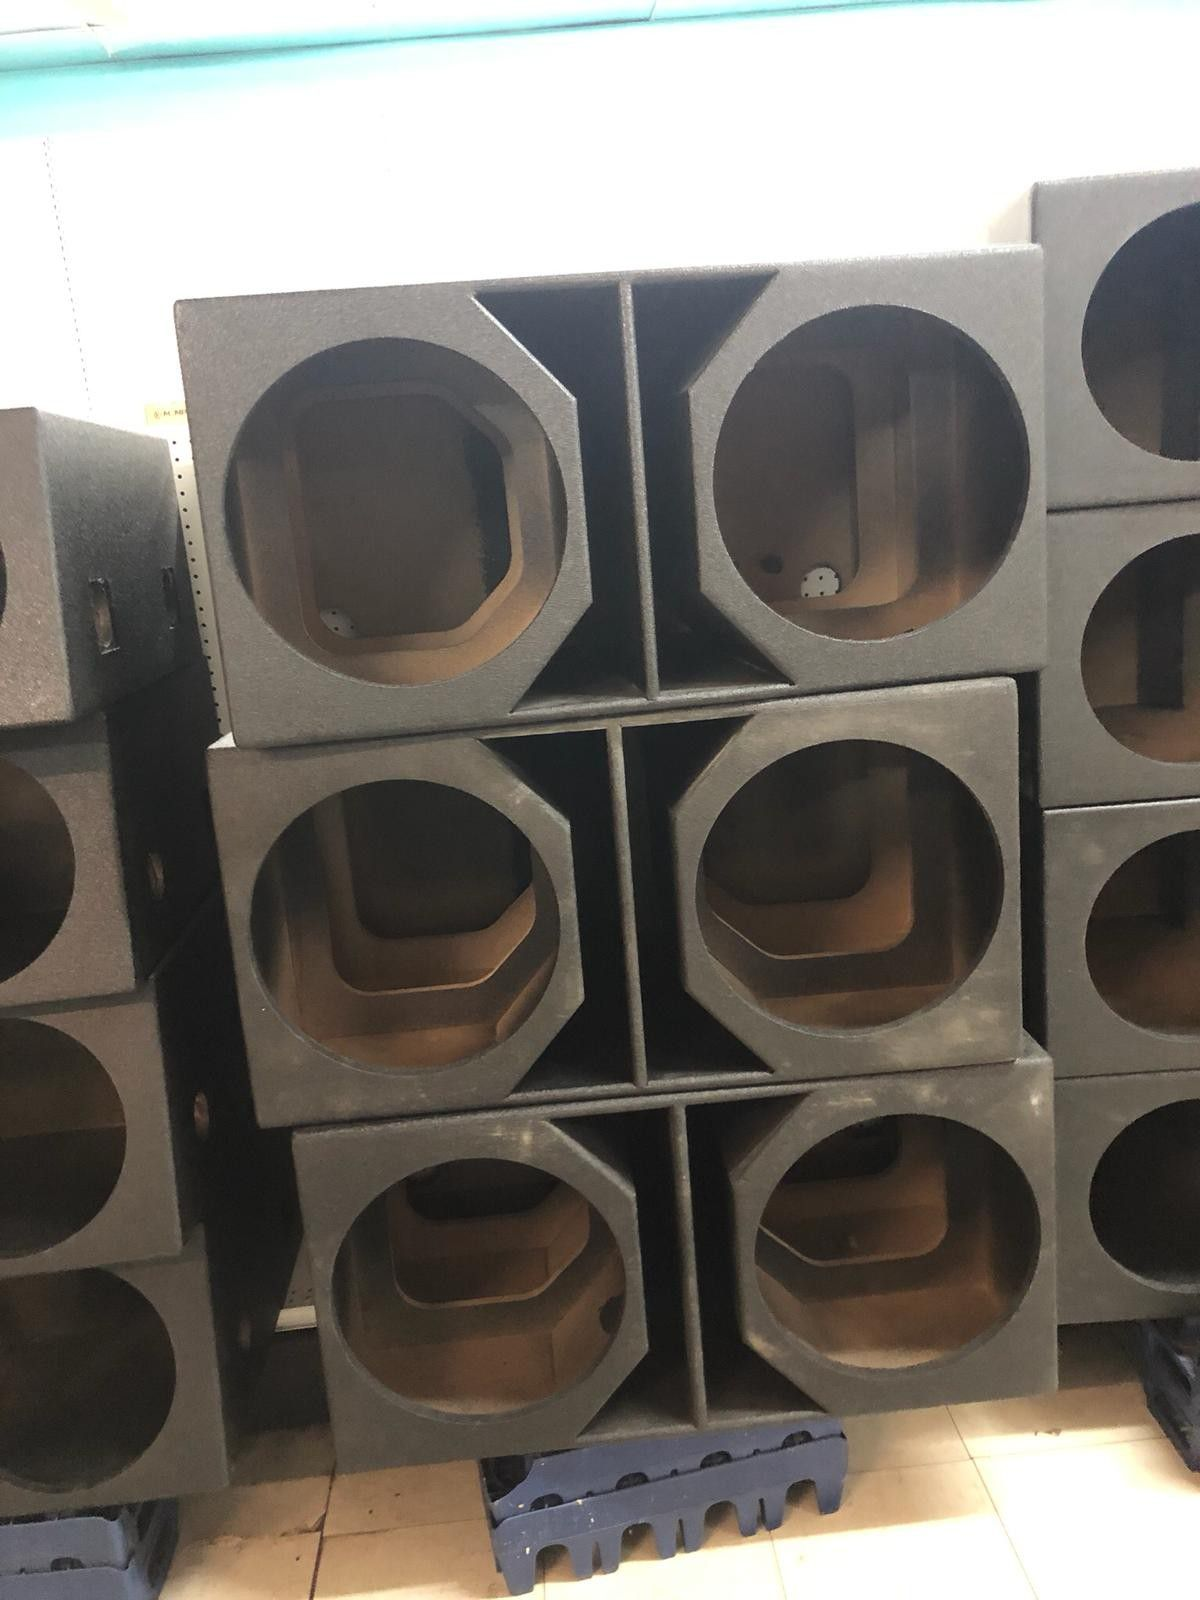 PROBOX HEAVY DUTY FOR 2 15s CLEARANCE SALE ONLY $169!! WOW!